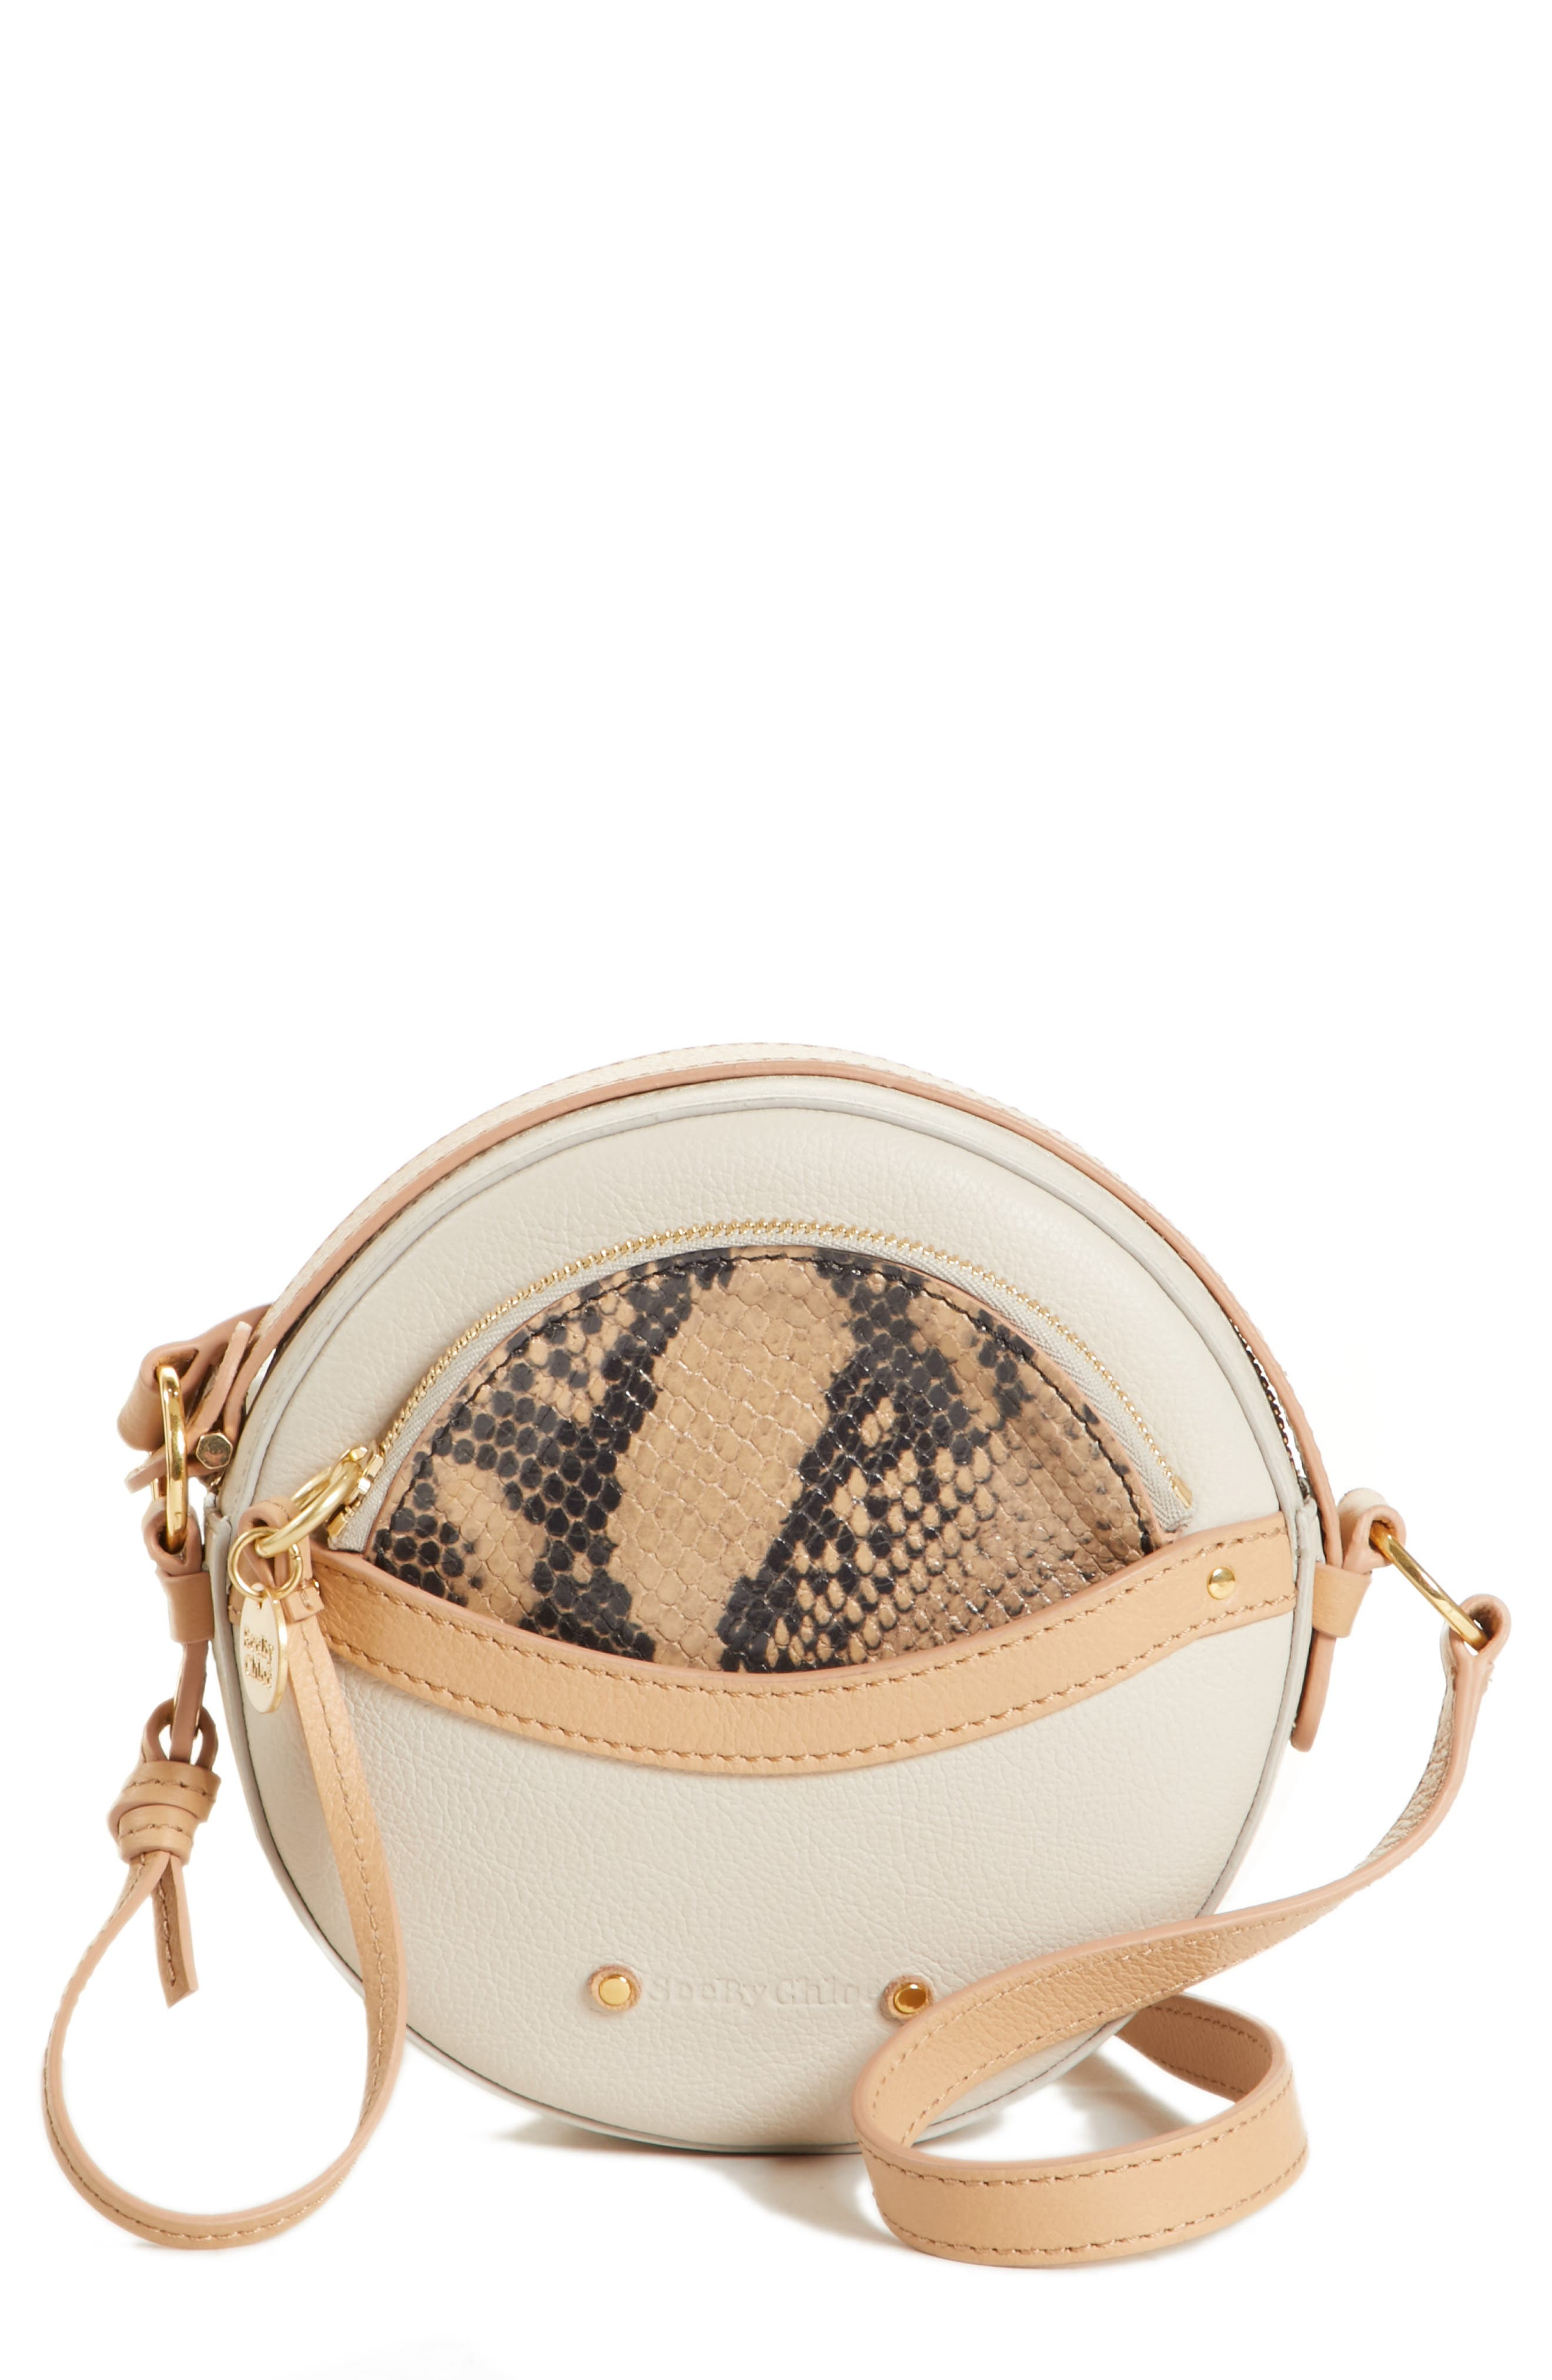 Rosy Mini Leather Crossbody Bag with Faux Snakeskin,                             Main thumbnail 1, color,                             CEMENT BEIGE